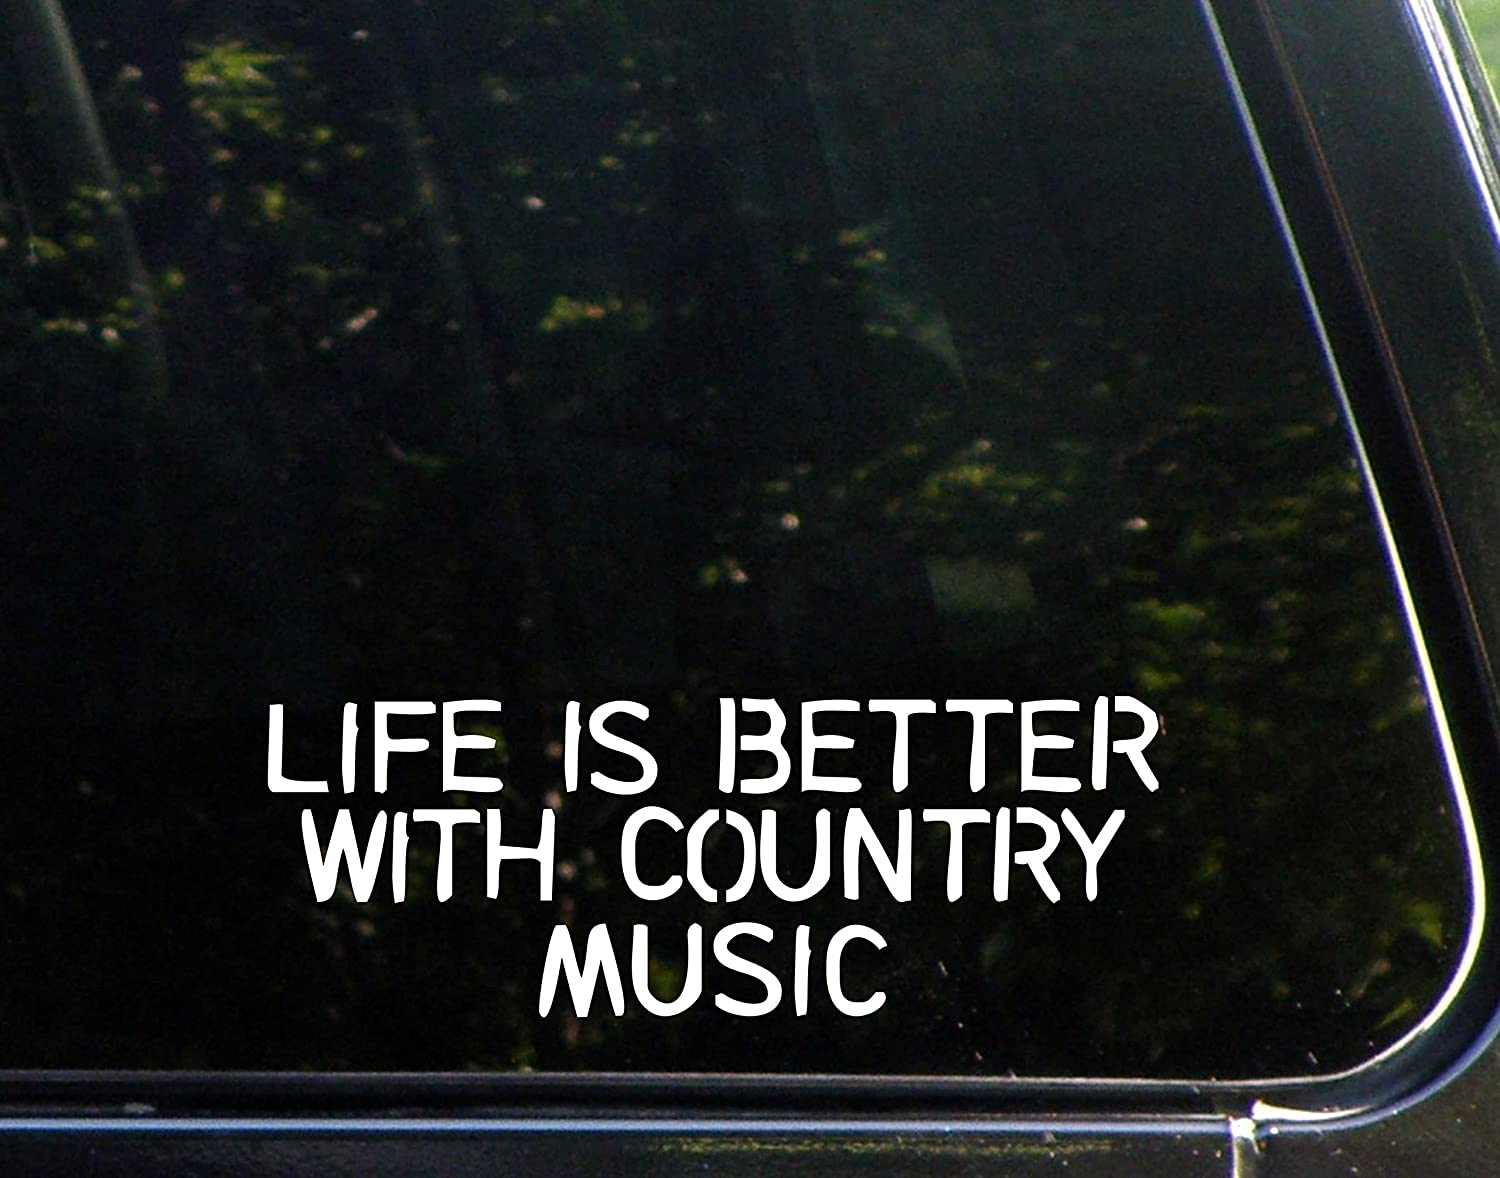 Amazoncom Life Is Better With Country Music X Vinyl - Die cut window decals